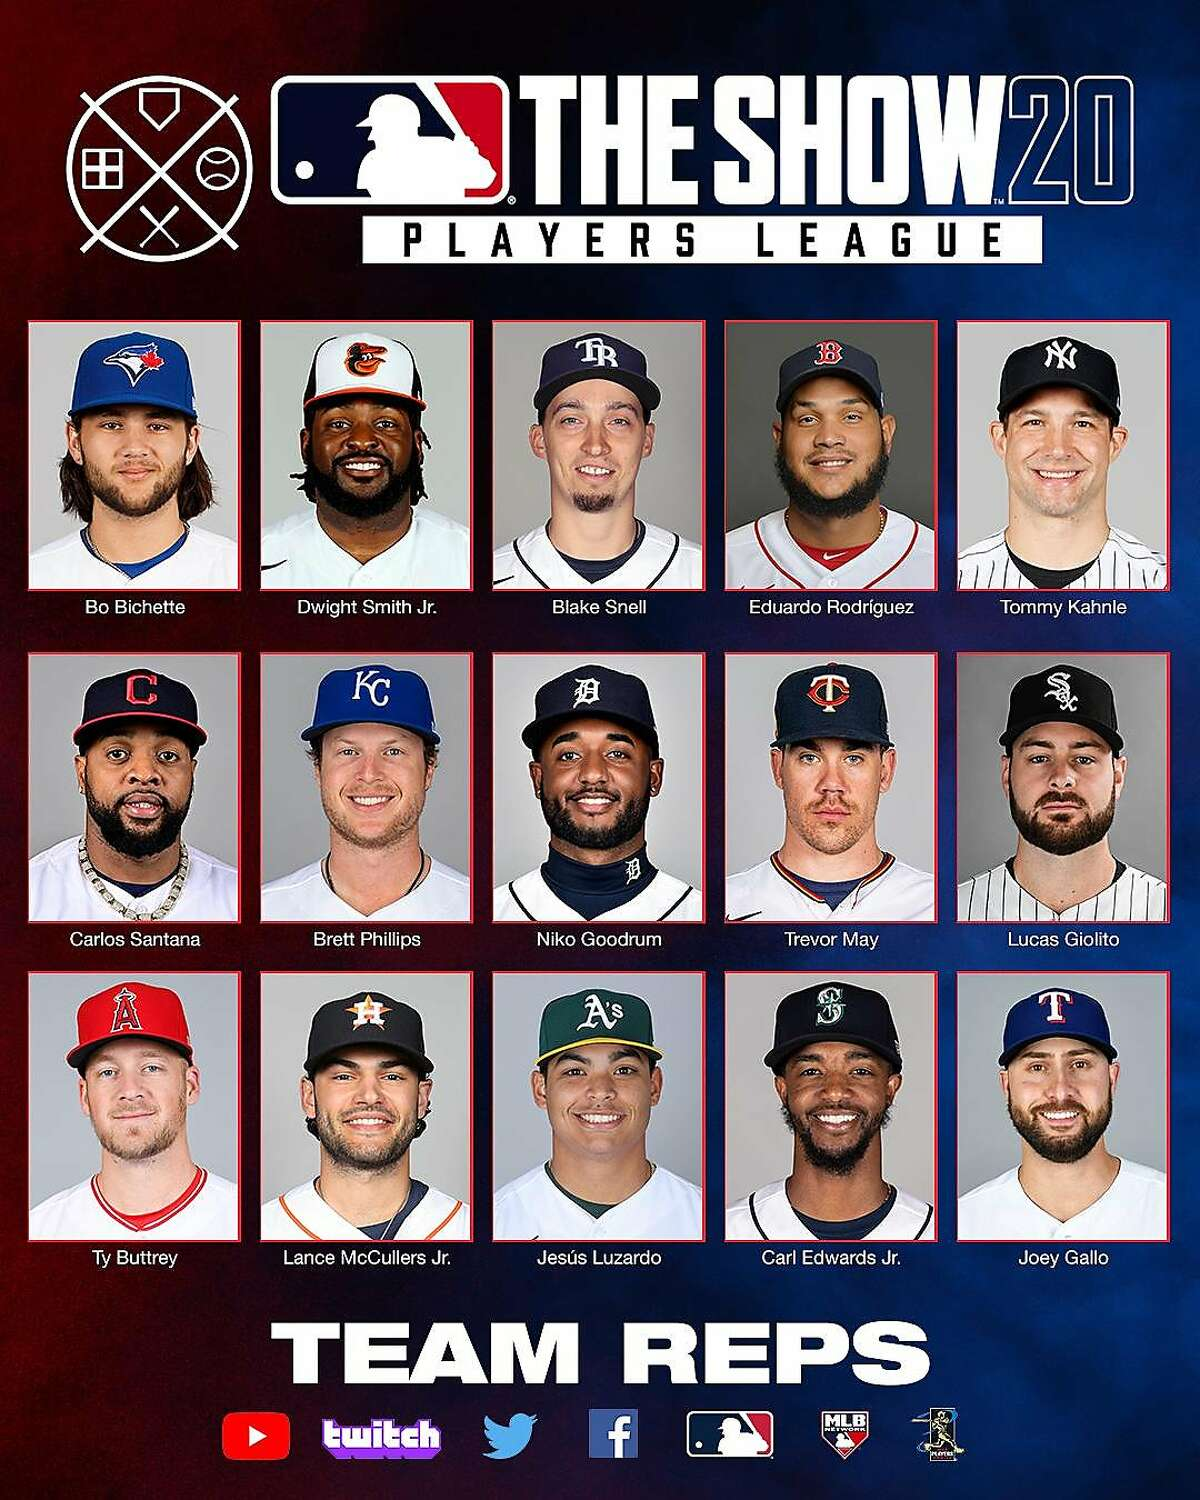 The American Leaguers in the videogame tournament